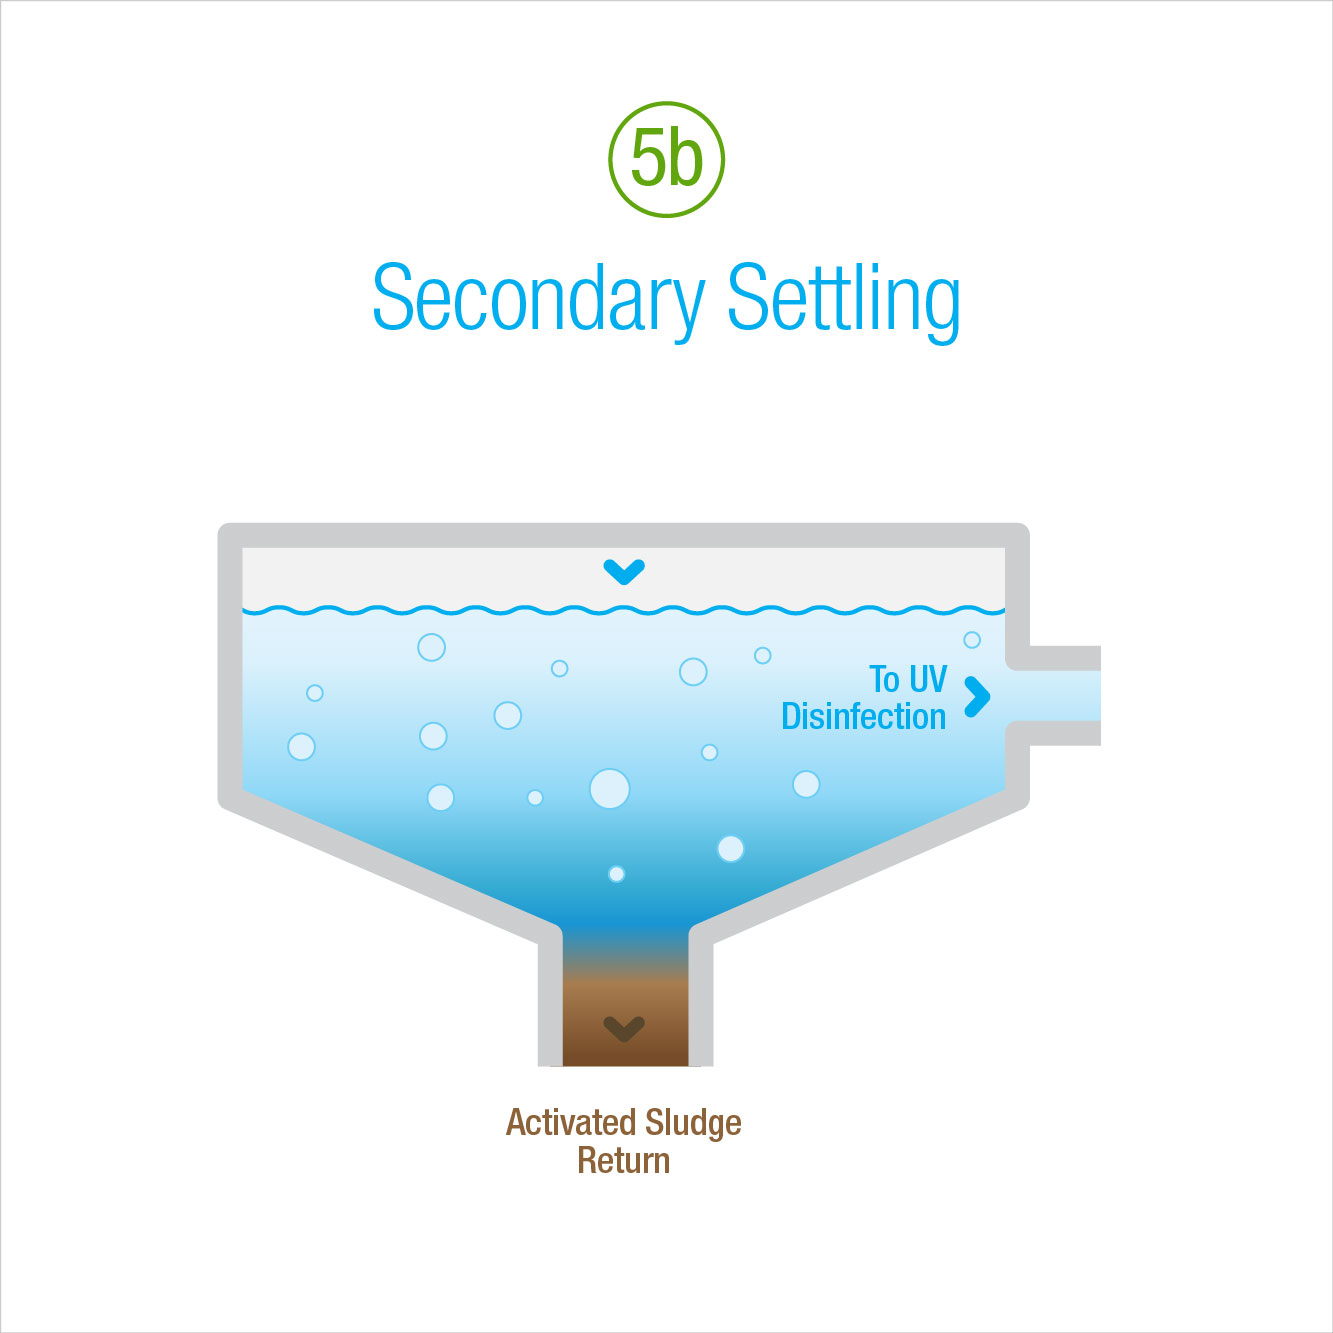 5b: Secondary Settling